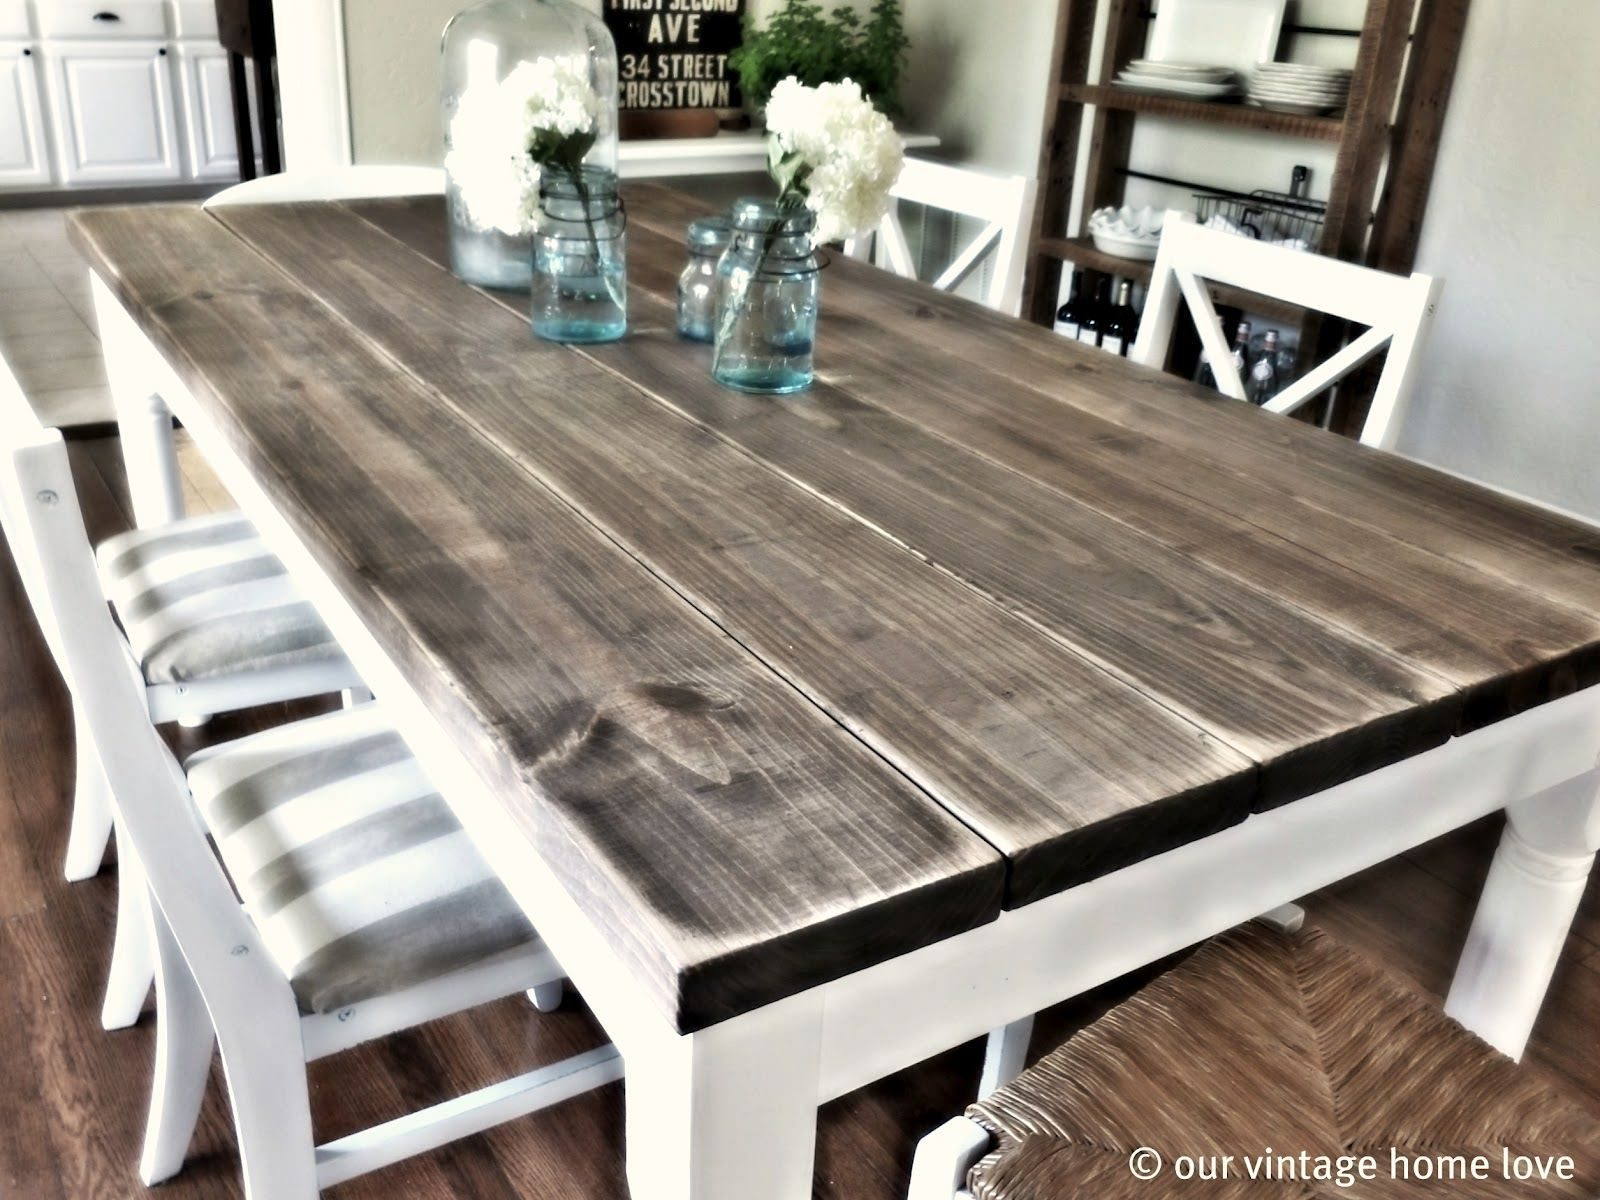 kitchen table lovely wood kitchen table diy dining room table with 2x8 boardskitchen table